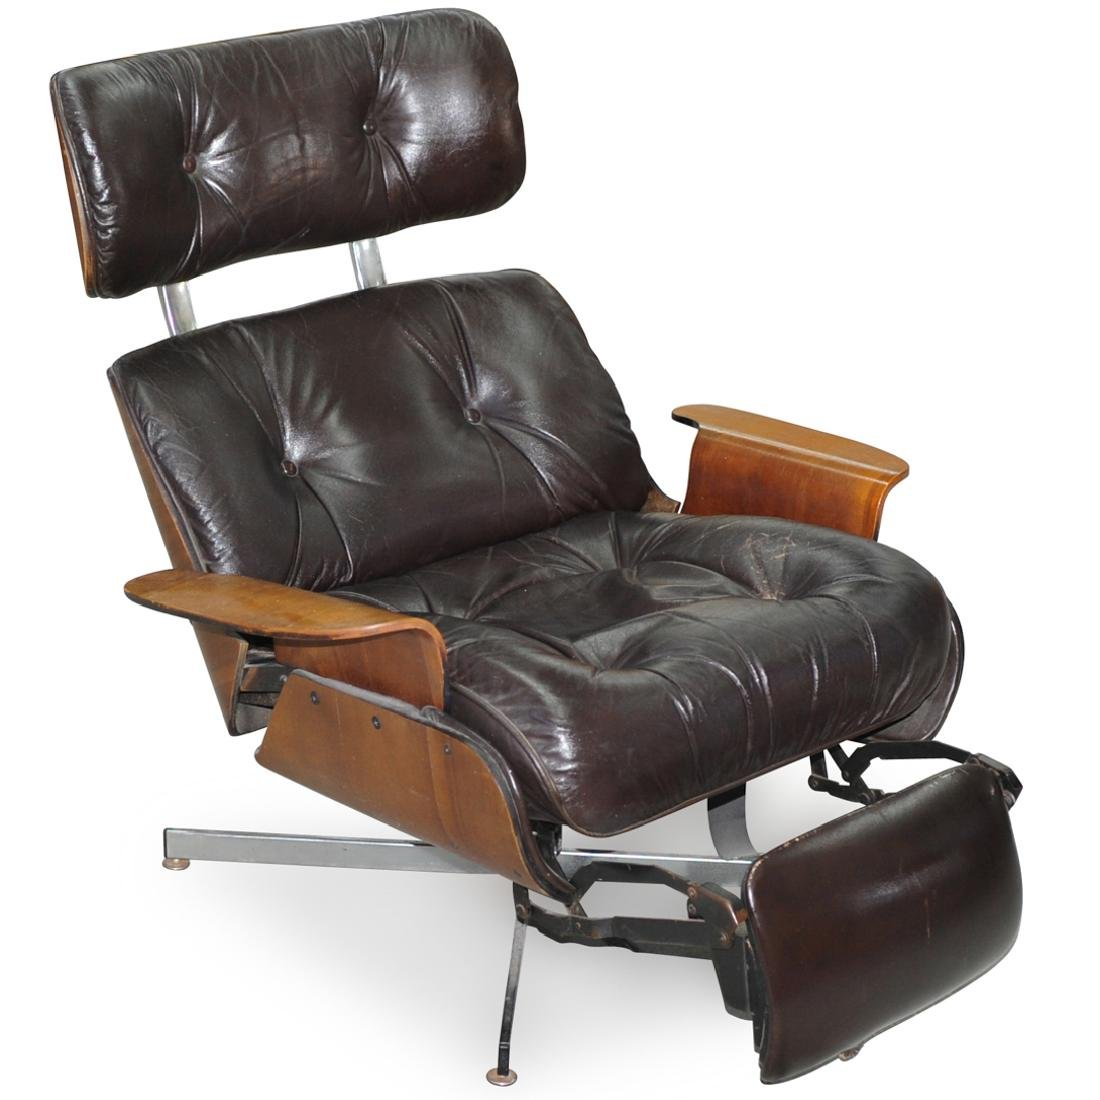 Eames Style Mid Century Recliner Chair